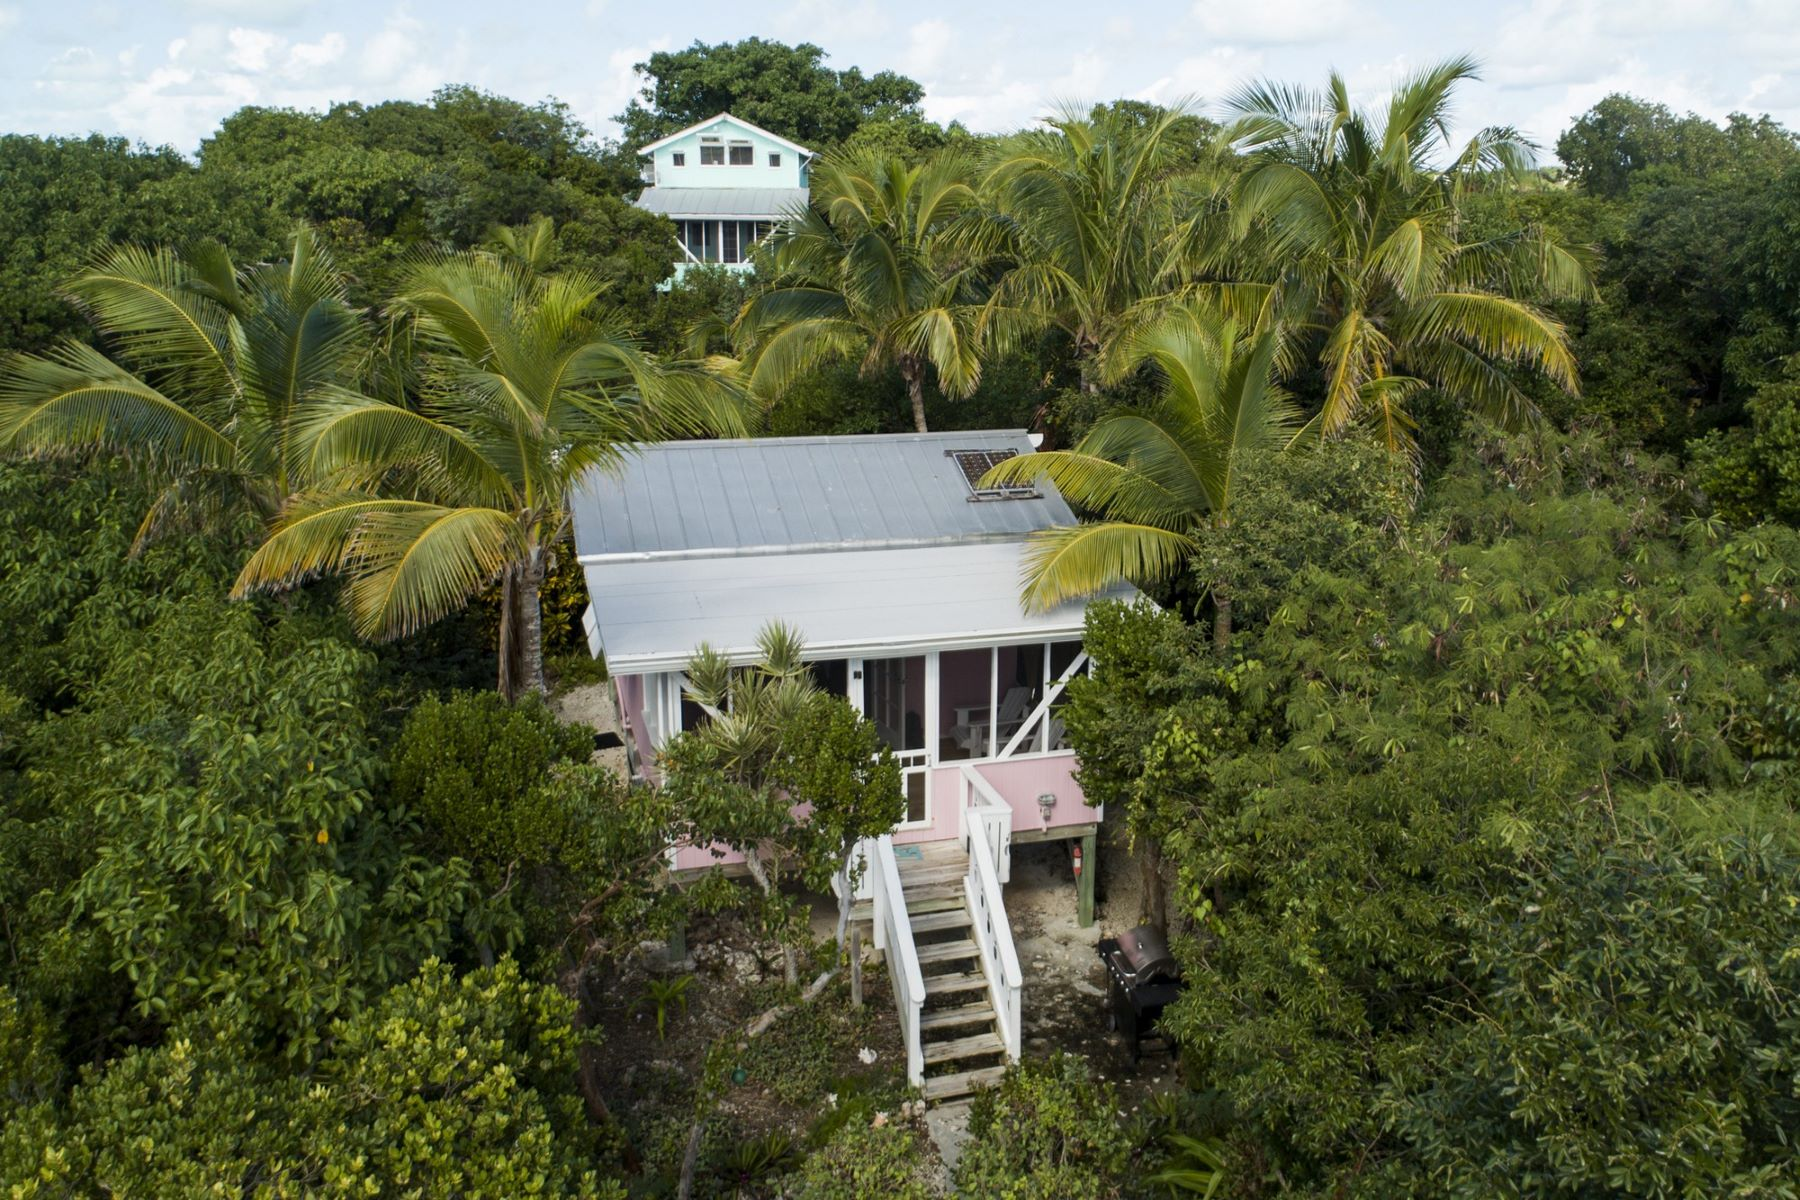 Casa Unifamiliar por un Venta en Watercolors Cottages Lubbers Quarters, Abaco, Bahamas